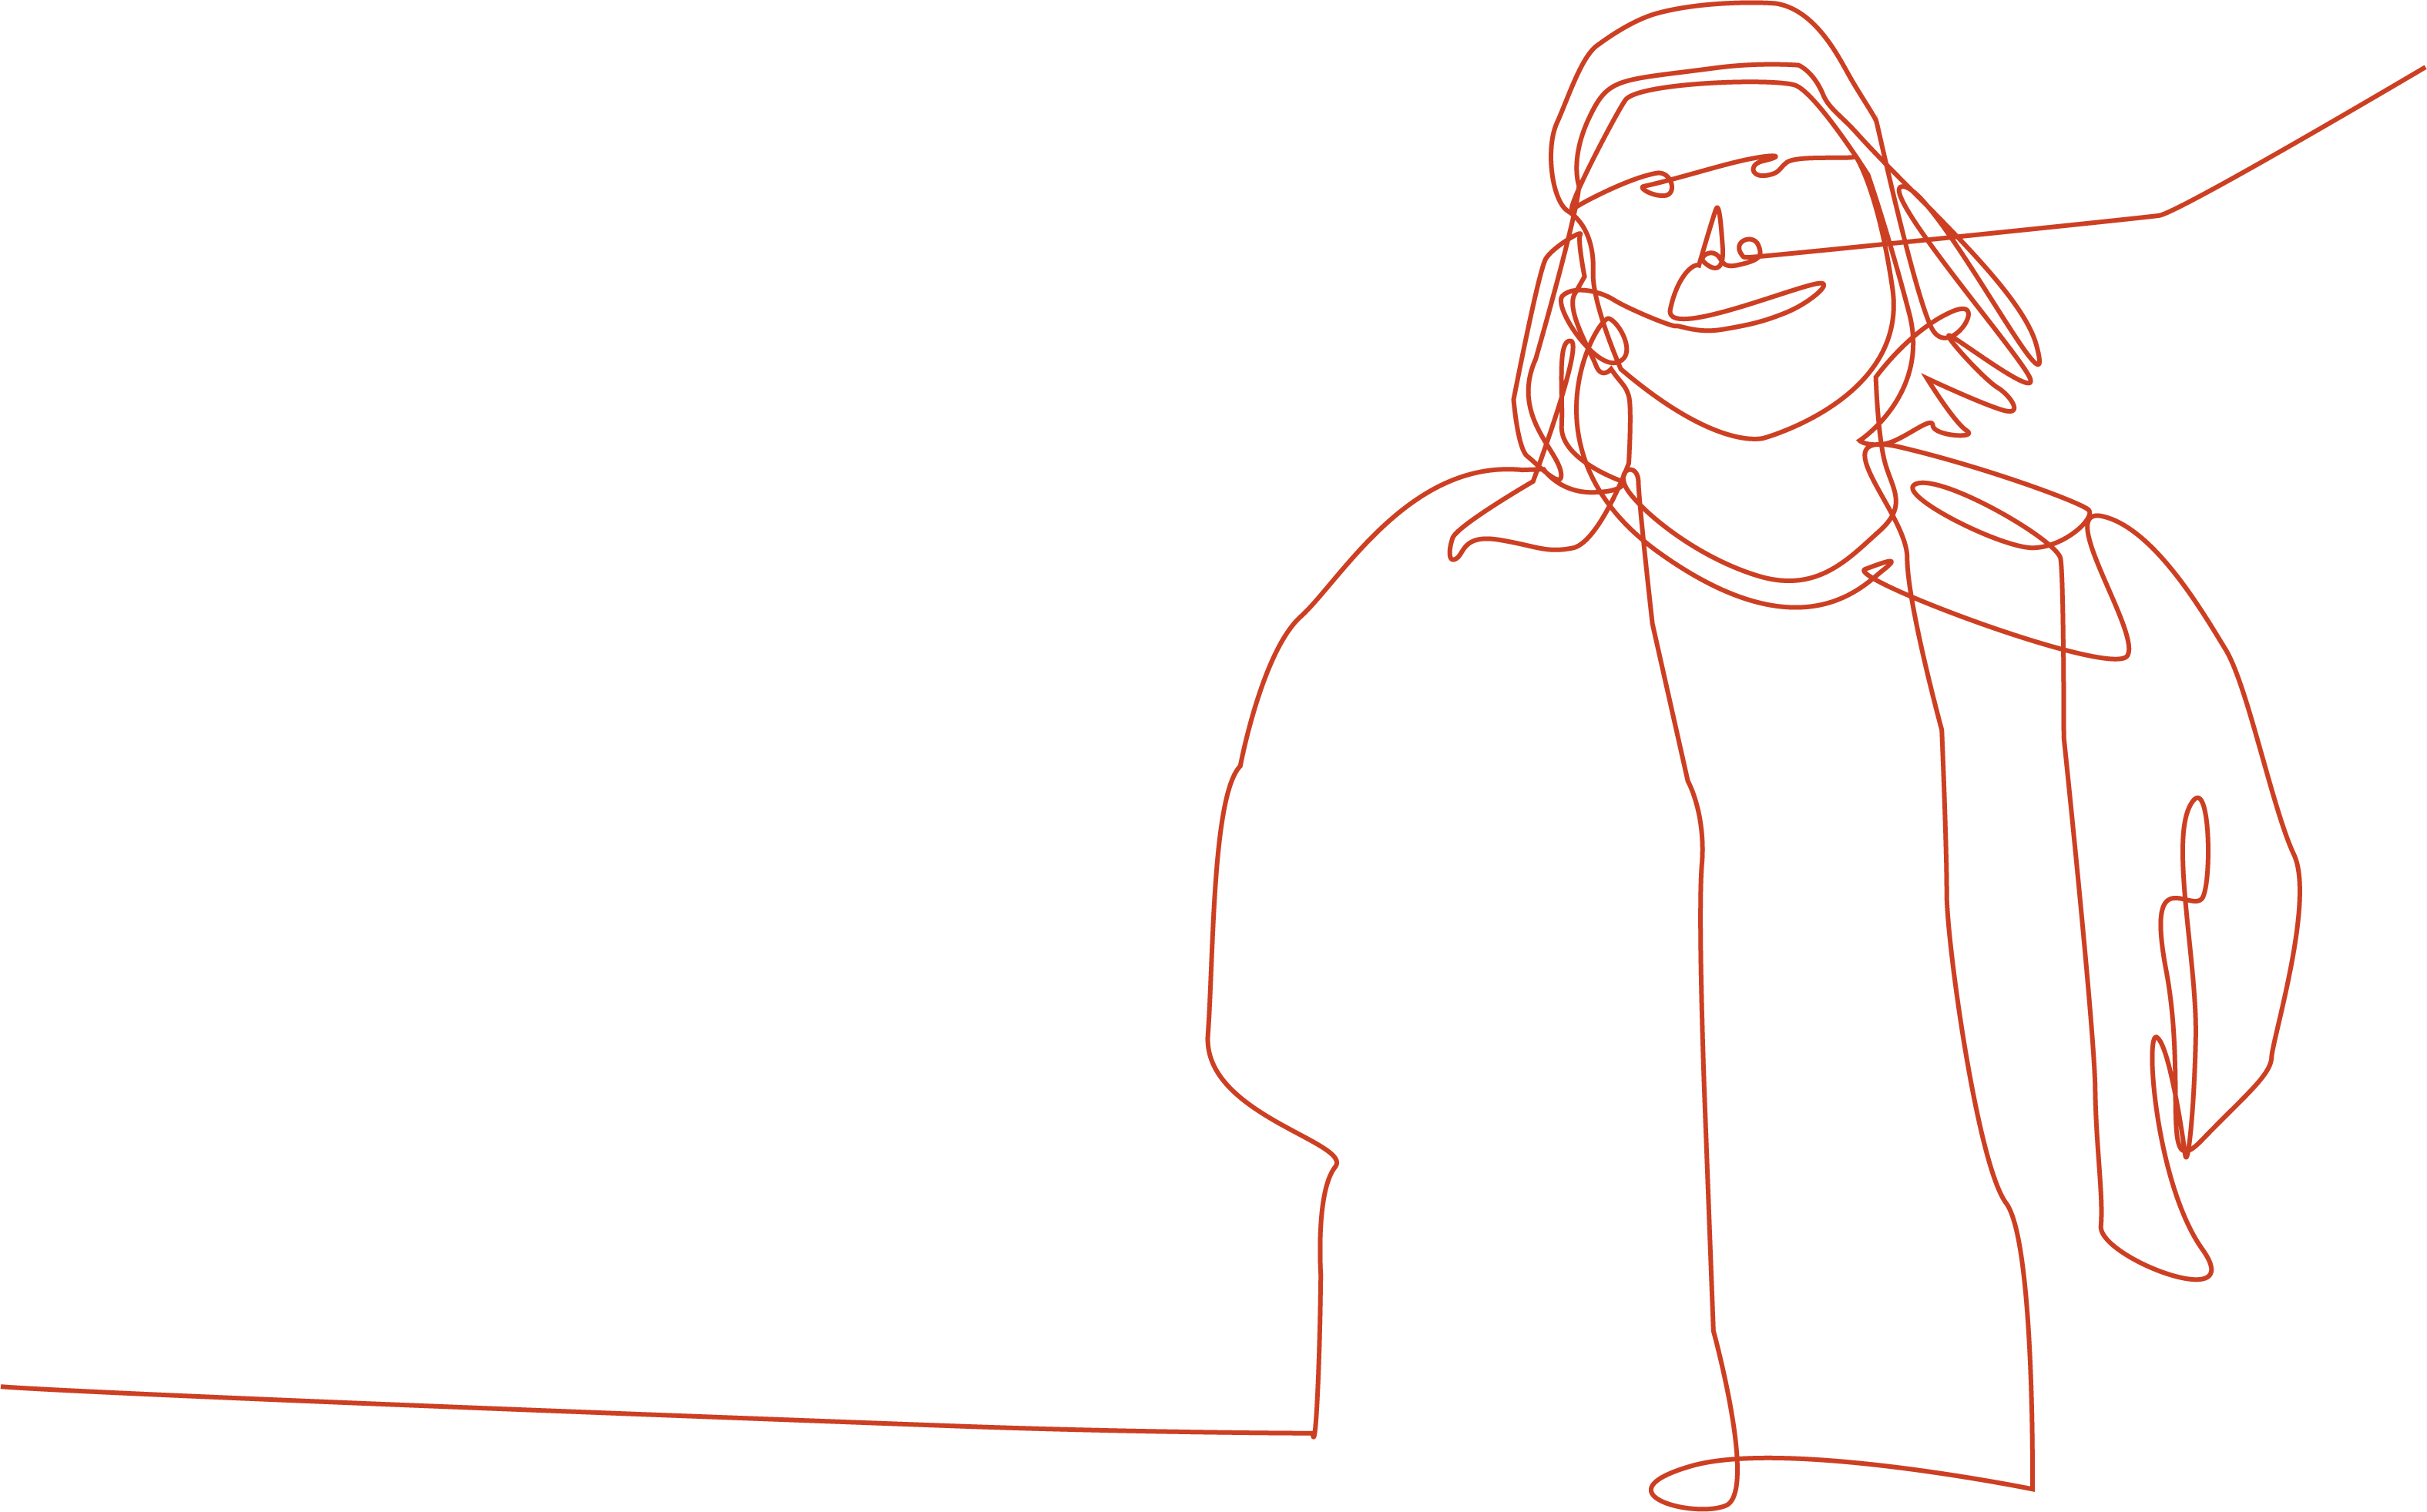 A line drawing of me with a bright orange red line.